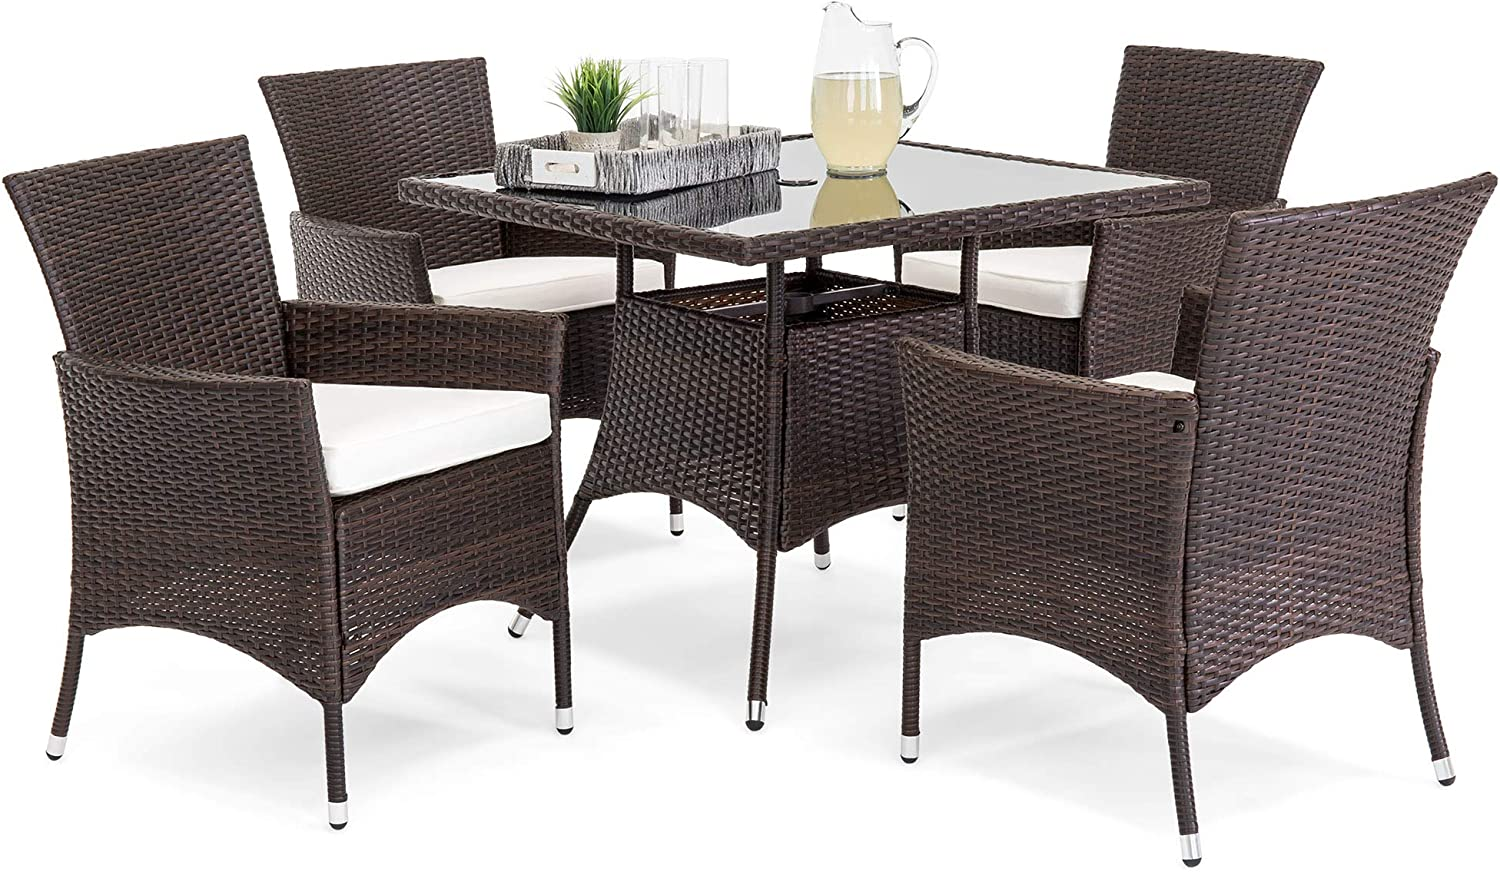 Best Choice Products 5-Piece Indoor Outdoor Wicker Patio Dining Set Furniture w Table, Umbrella Cut Out, 4 Chairs -Brown